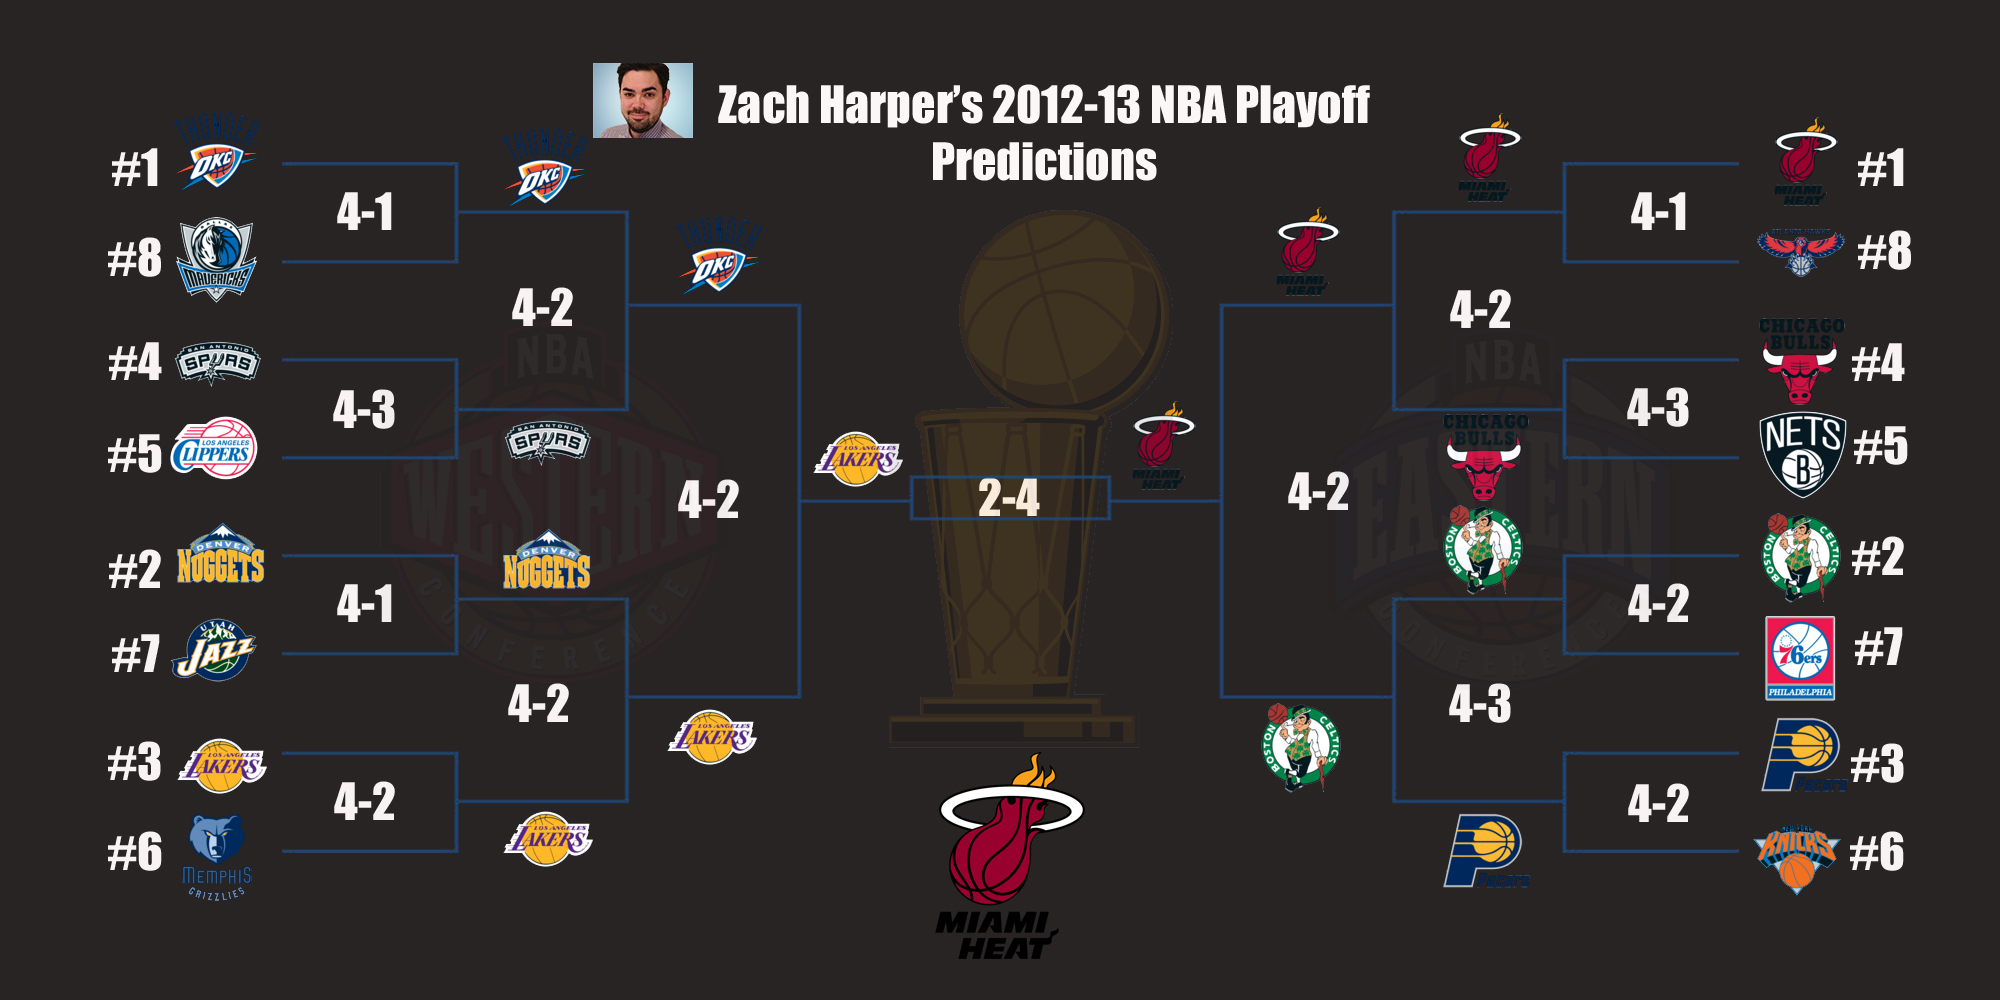 CBSSports.com 2012-13 NBA Playoff Predictions